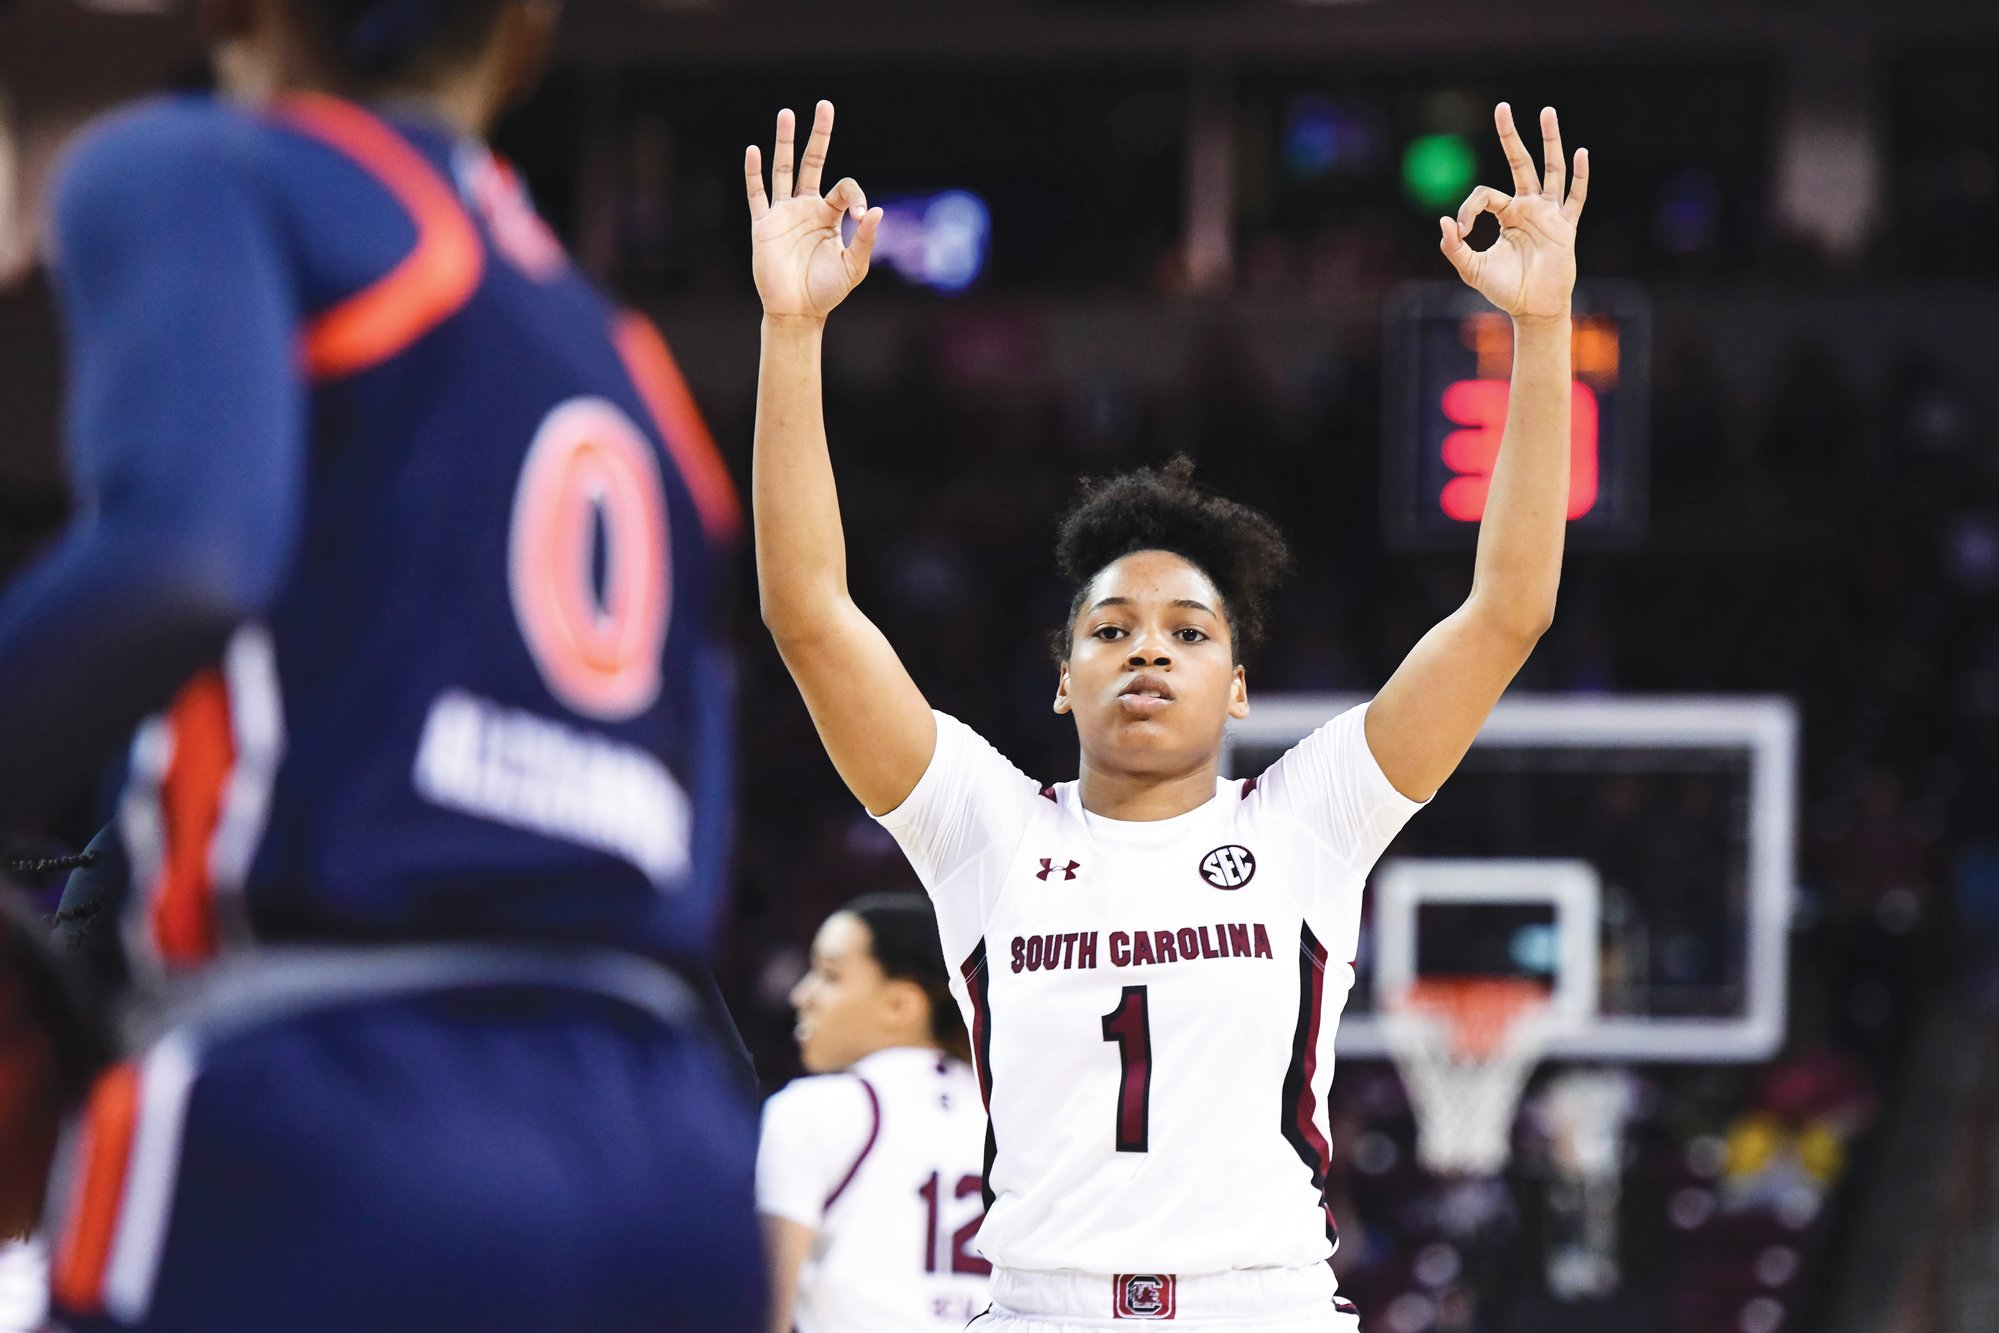 South Carolina guard Zia Cooke (1) celebrates a three-point basket against Auburn during the first half of an NCAA college basketball game Thursday, Feb. 13, 2020, in Columbia, S.C.